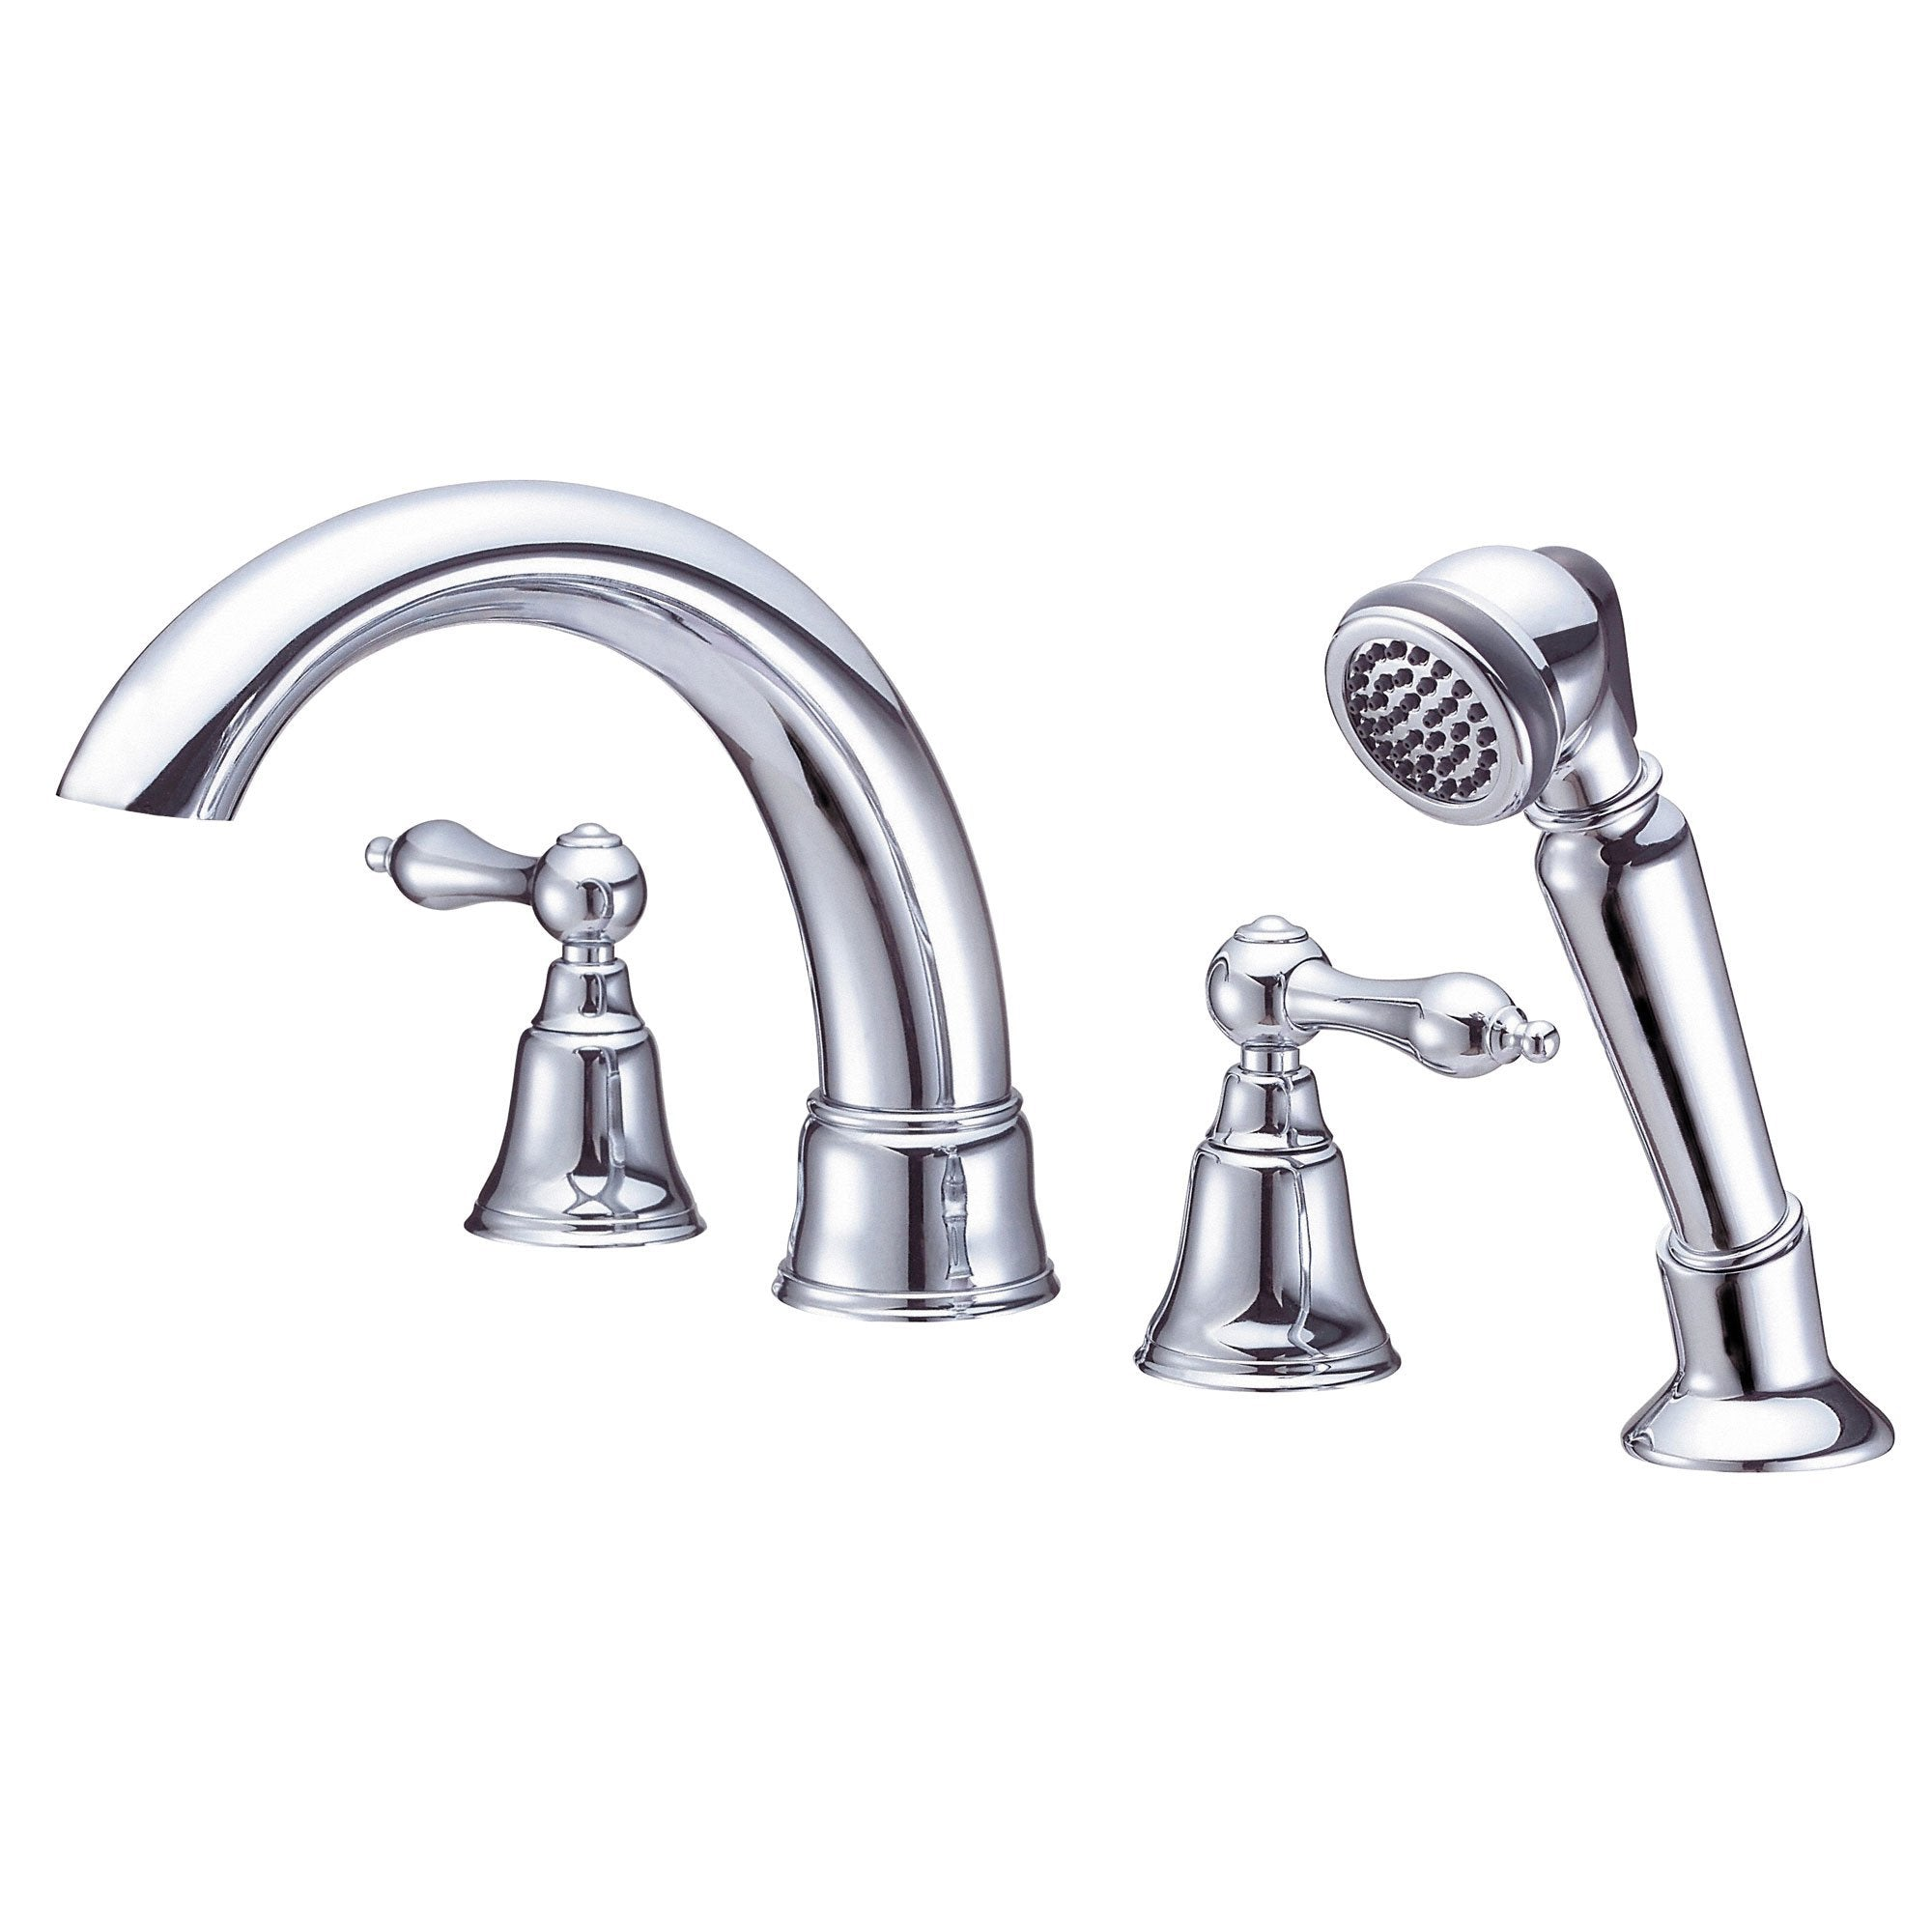 Danze Fairmont Chrome Widespread Roman Tub Filler Faucet with Hand Shower INCLUDES Rough-in Valve